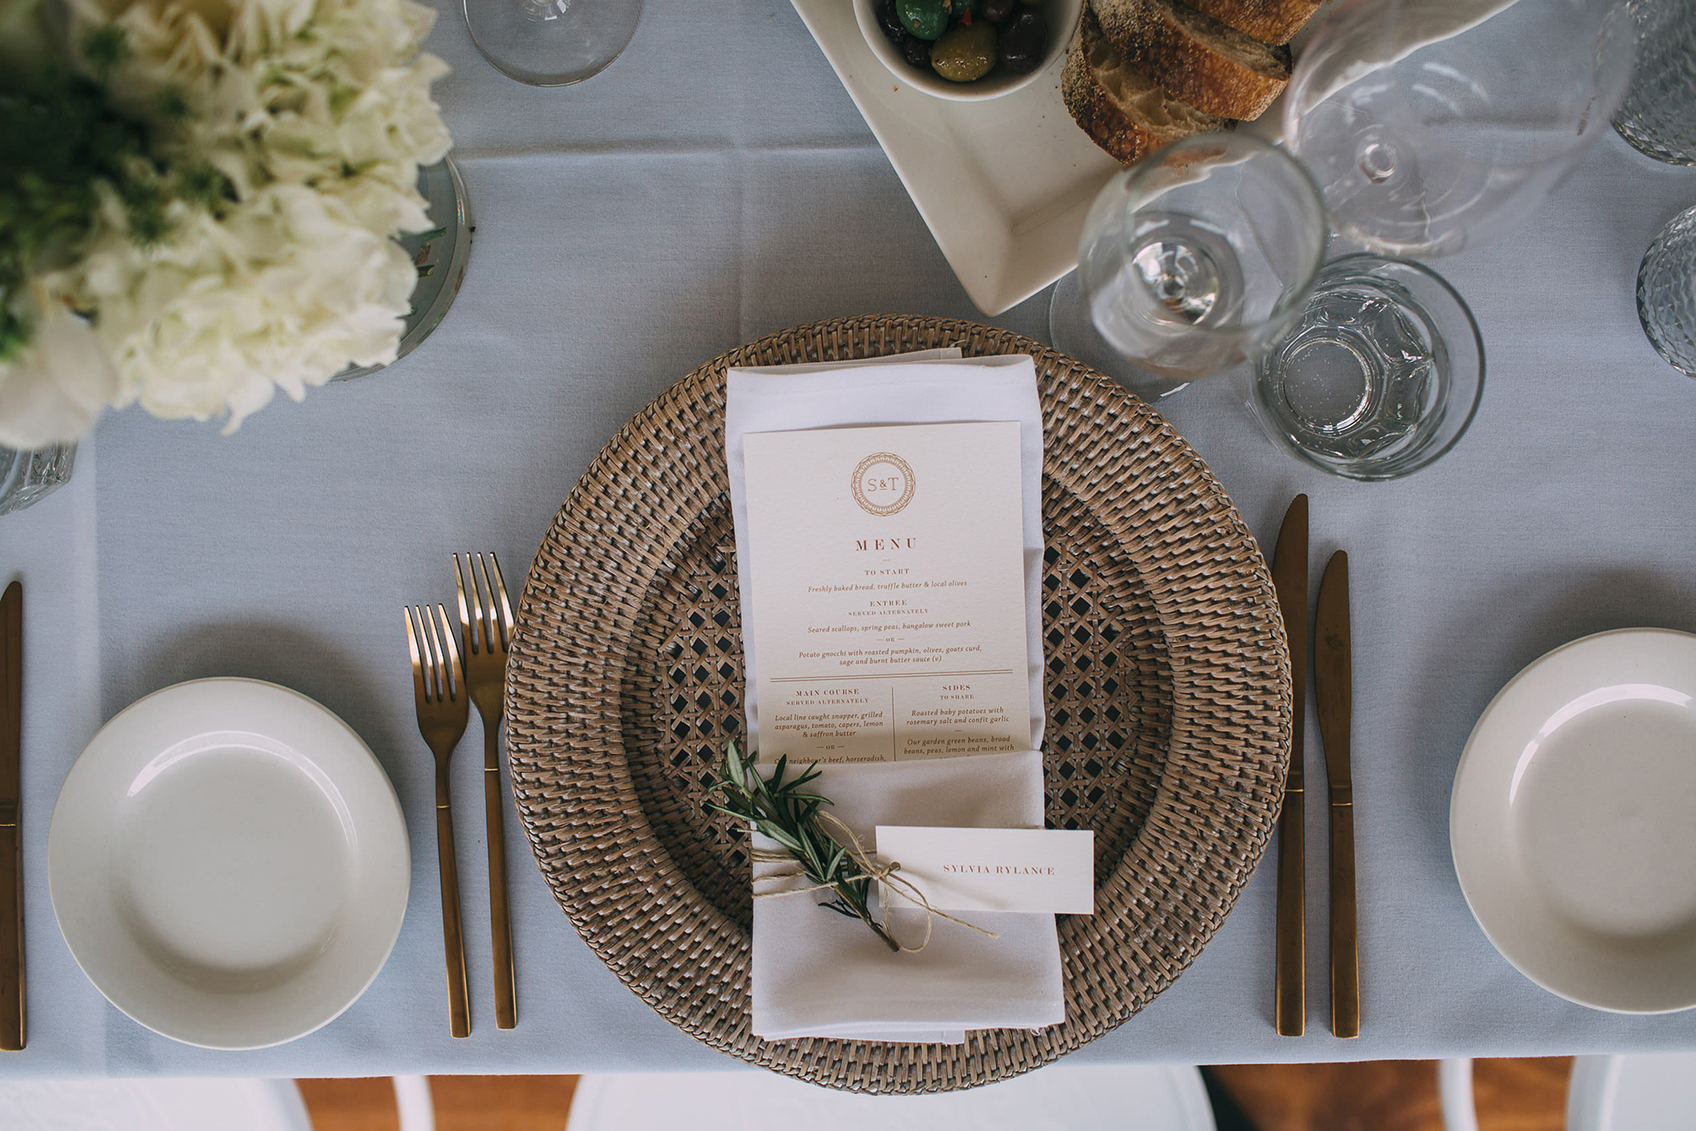 Gold Cutlery with Woven Charger Plate Table Setting and Menus - Copper & Gold Wedding Styling Inspiration - Yesterday Creative Letterpress Blog